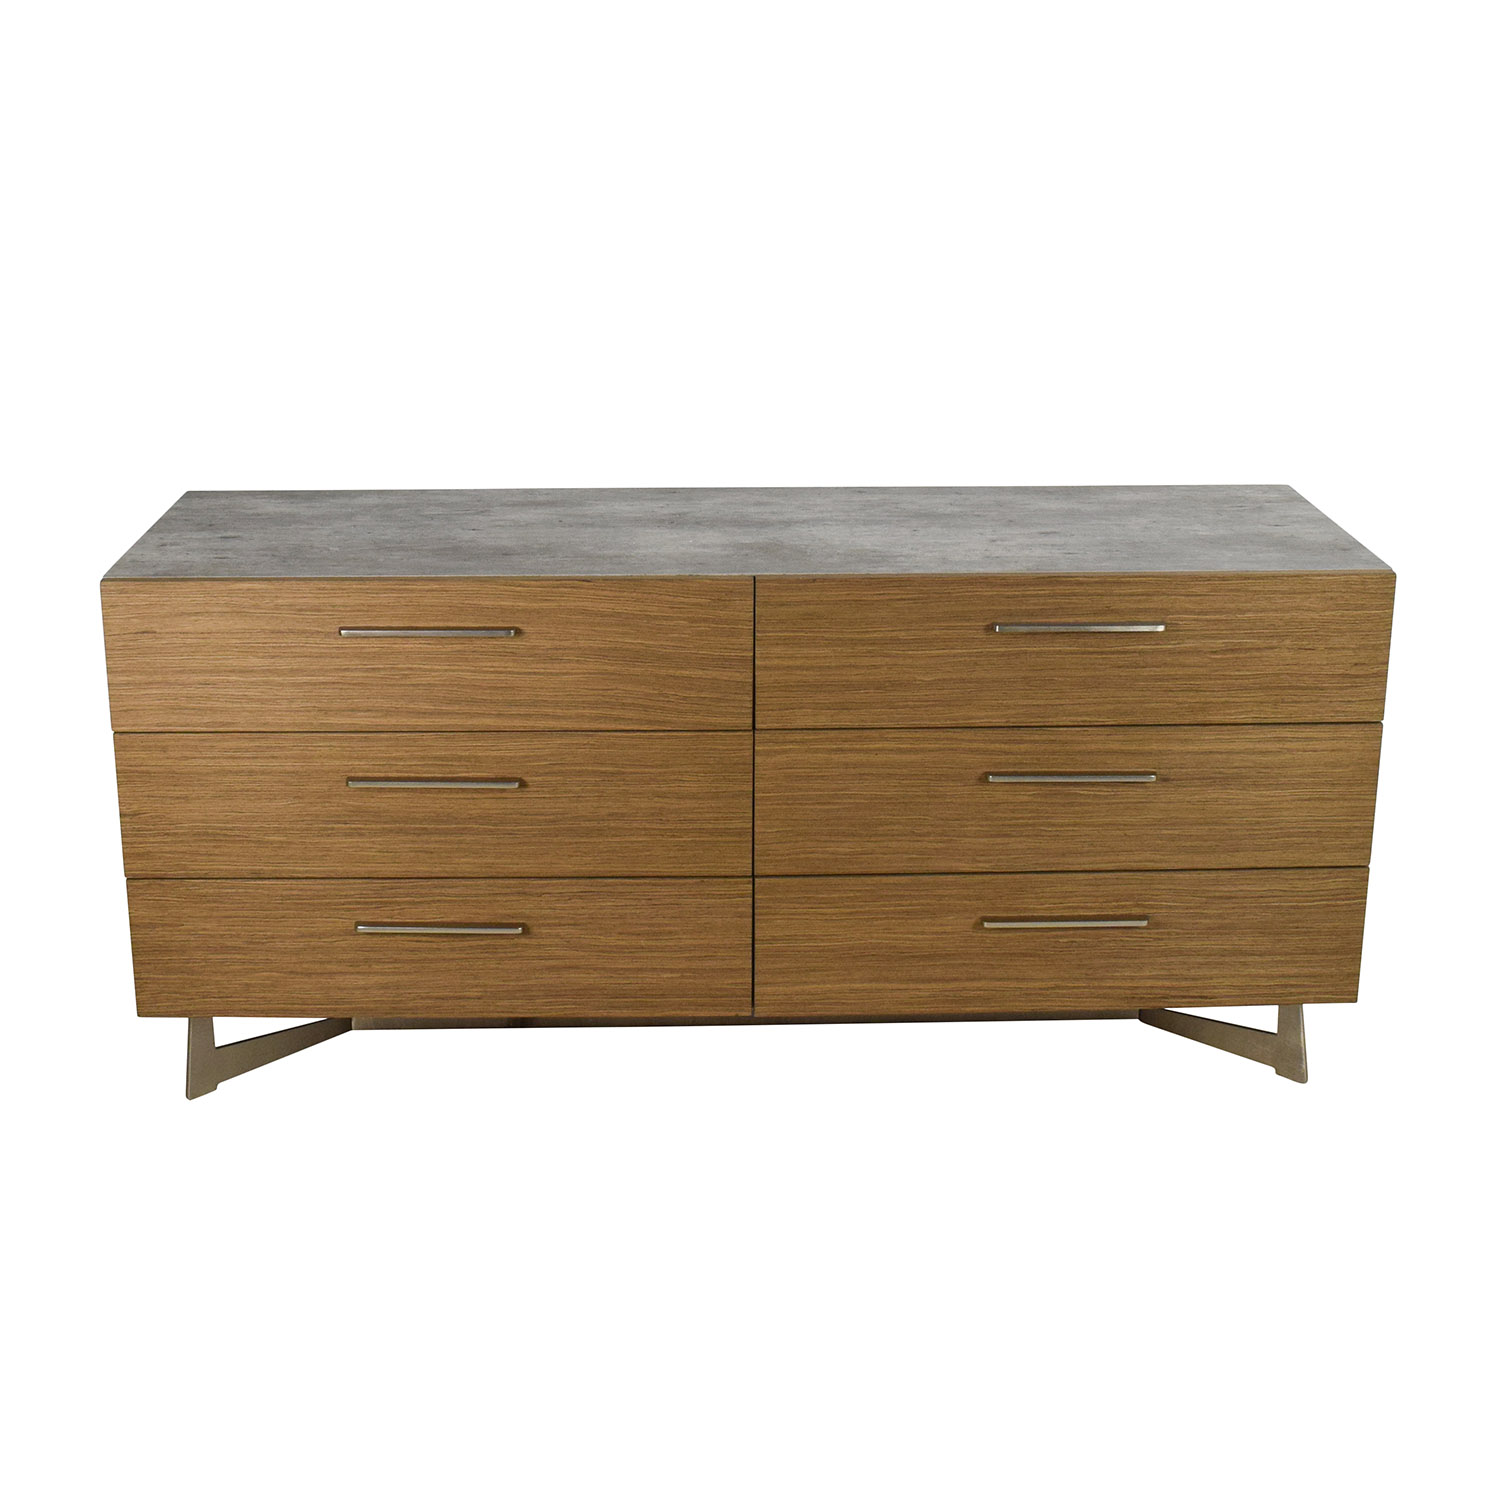 shop Modloft Broome Walnut and Concrete Dresser Modloft